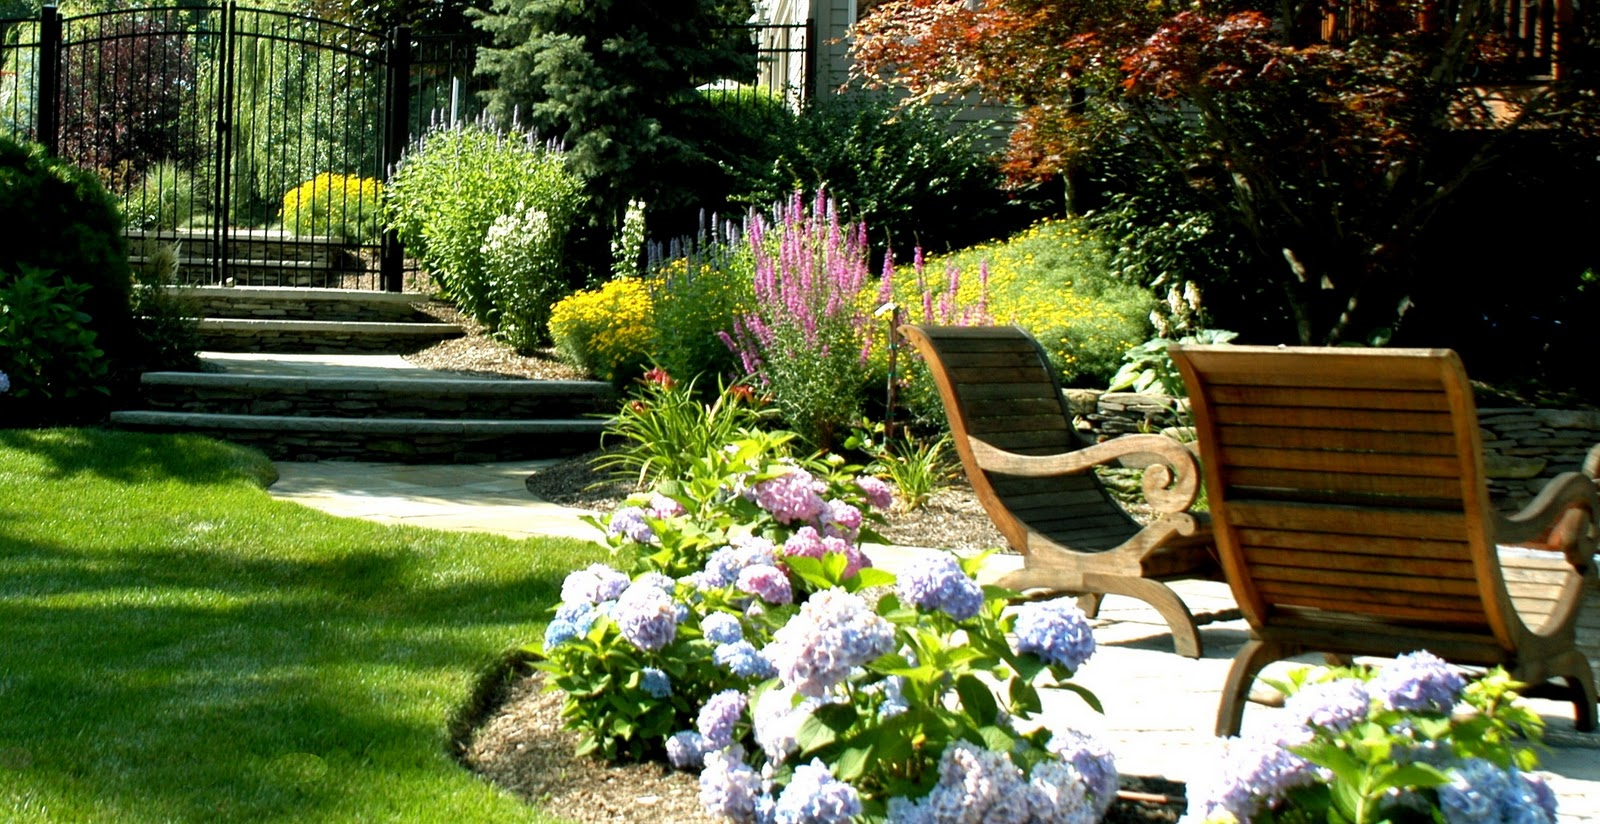 Hightechlandscapes new jersey landscape design for Home and landscape design